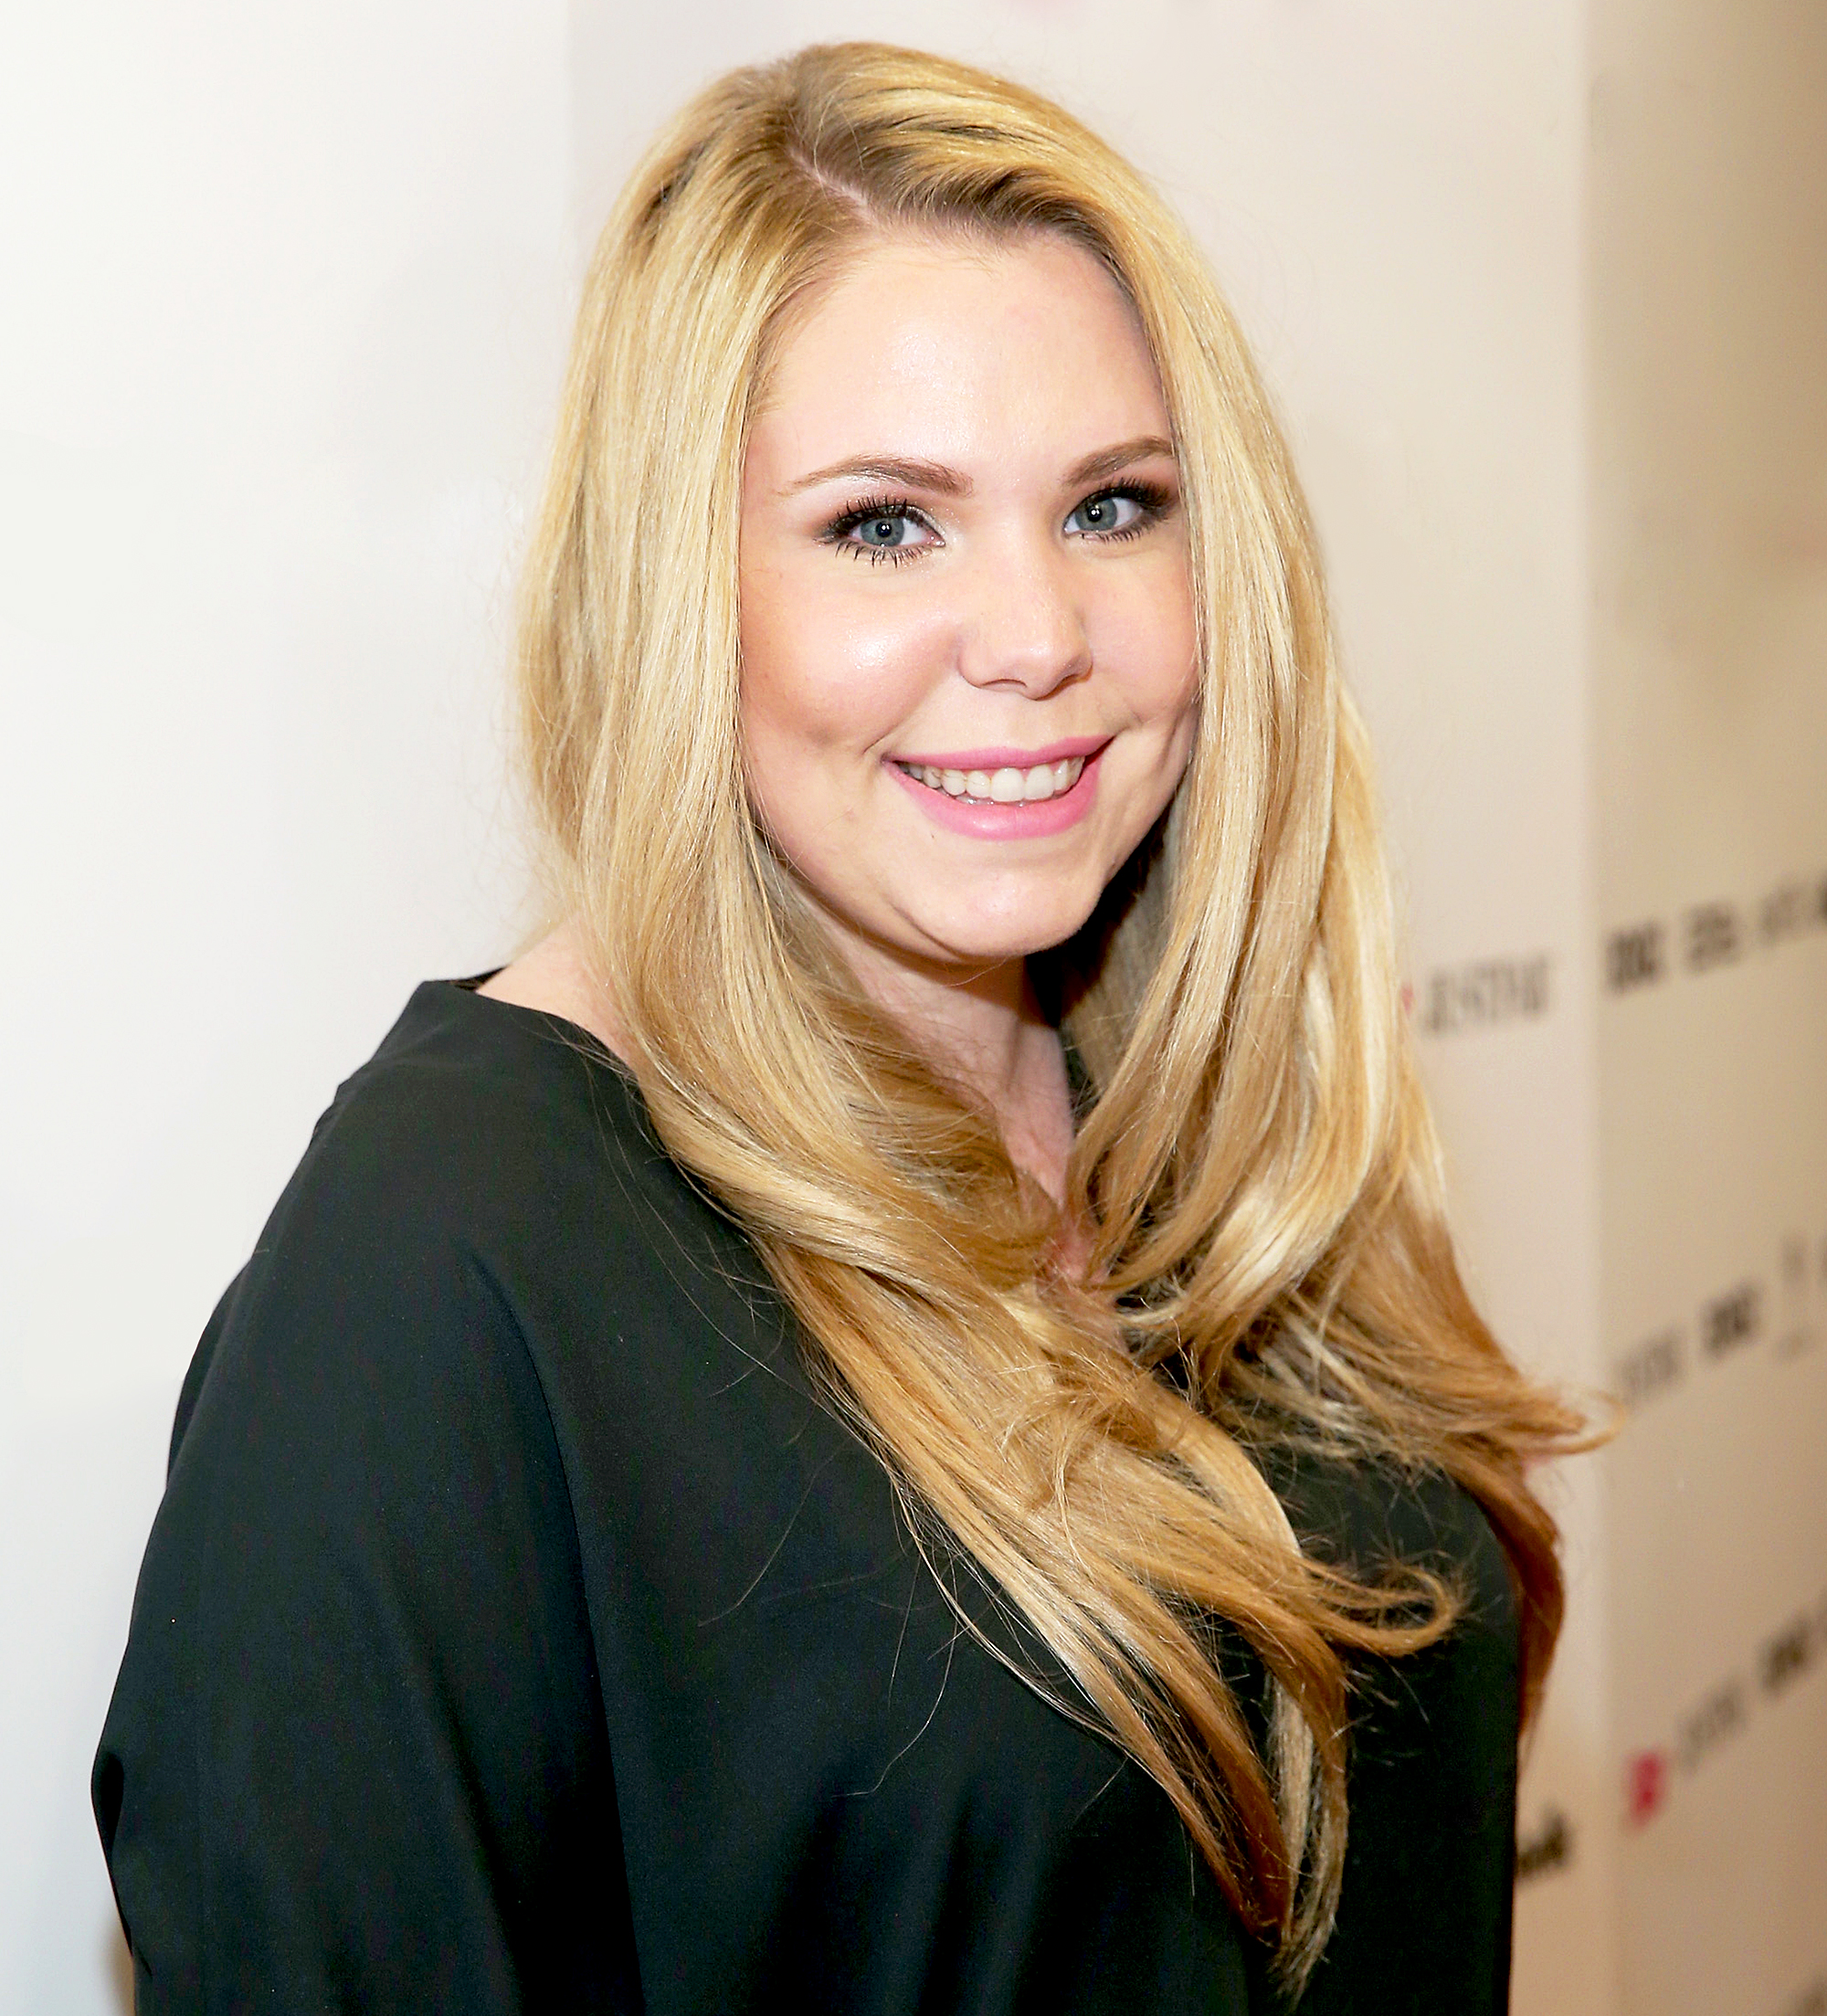 Kailyn Lowry attends Star Magazine Hollywood Rocks 2014 at SupperClub in Los Angeles, California.